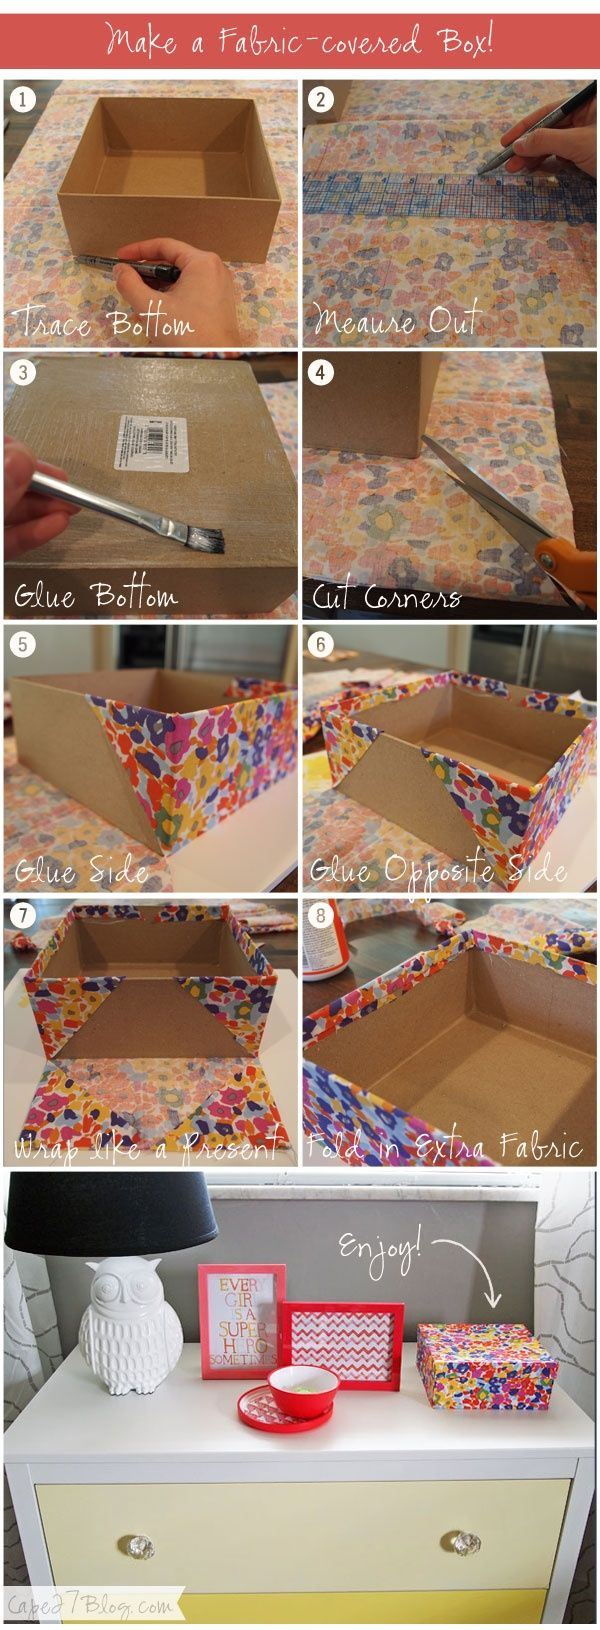 DIY Fabric Covered Box DIY Fabric Covered Box